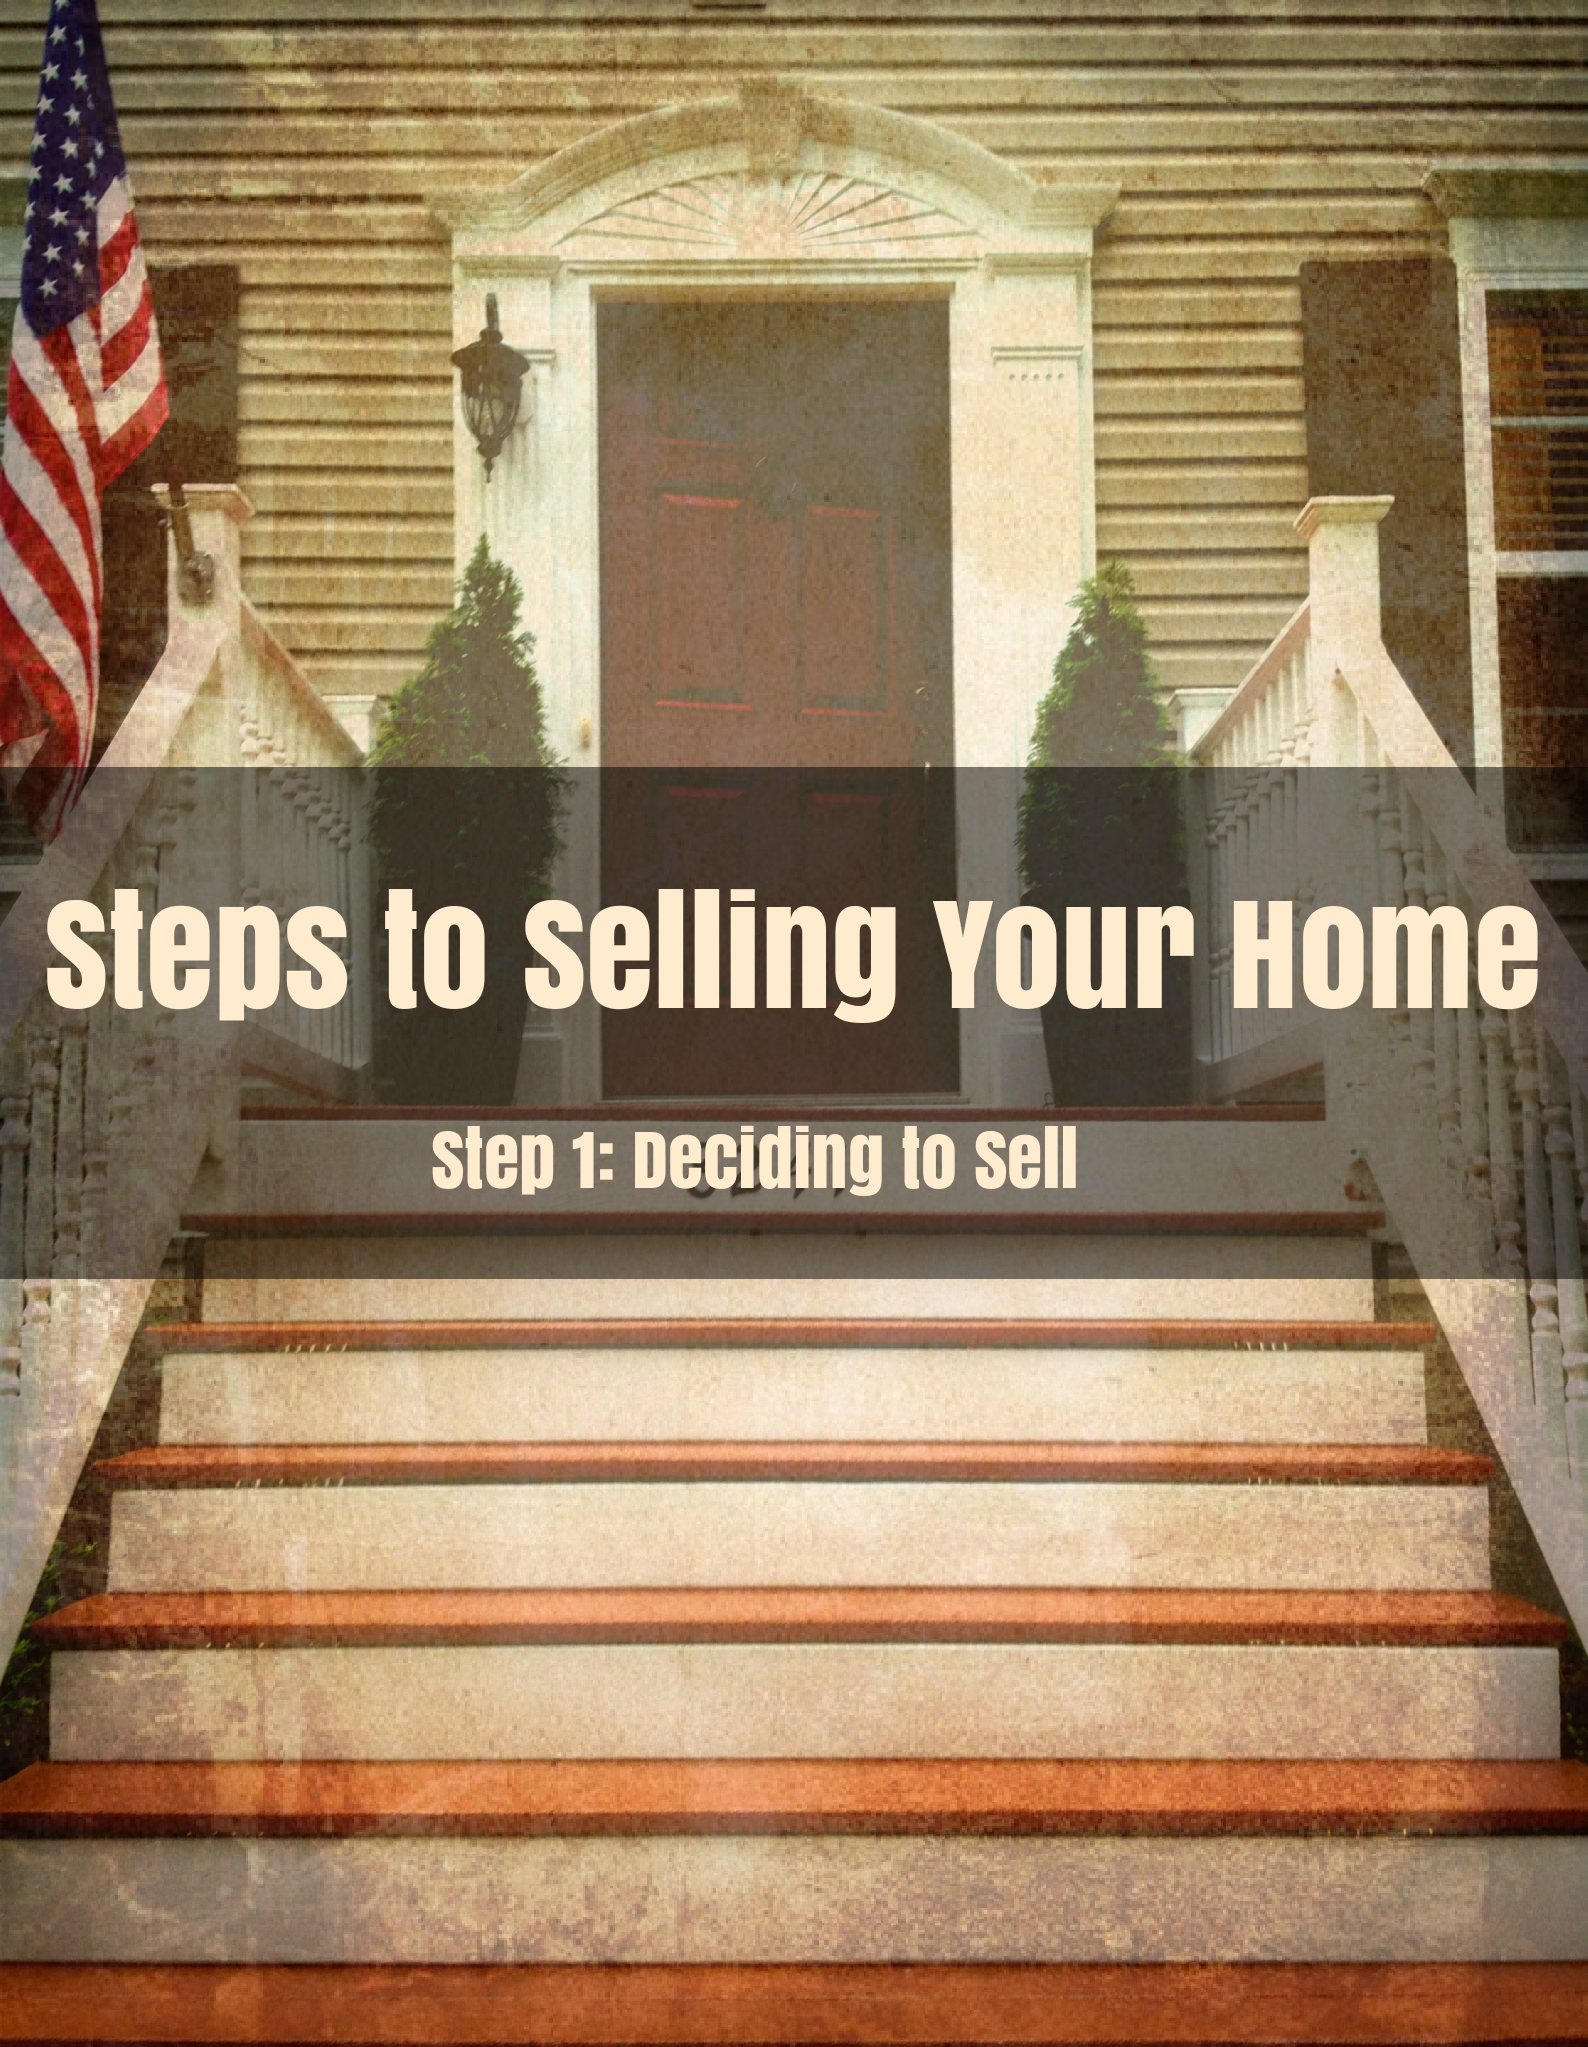 Deciding to Sell